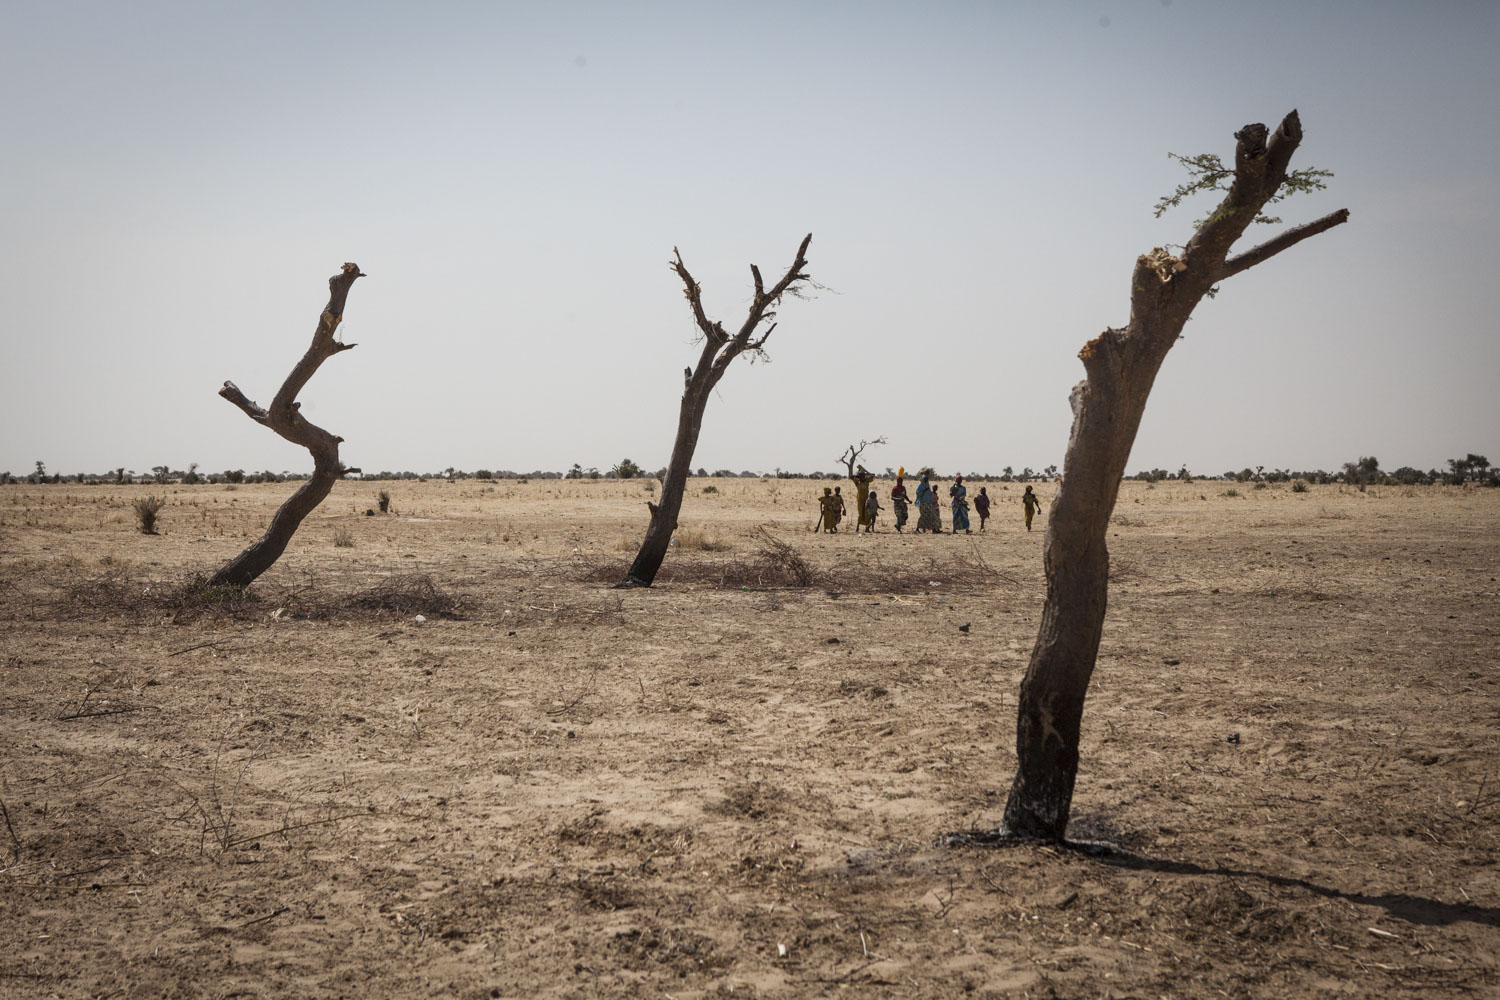 A group of women and children search for wood across from the Grain Wanzam Camp in Diffa, Niger.Garin Wanzam Camp is the largest camp in the region hosting almost 23,000 displaced people. Many cut down trees in the area in order to help reduce the cost of firewood which can cost up to 30-40 percent of a family's monthly budget.